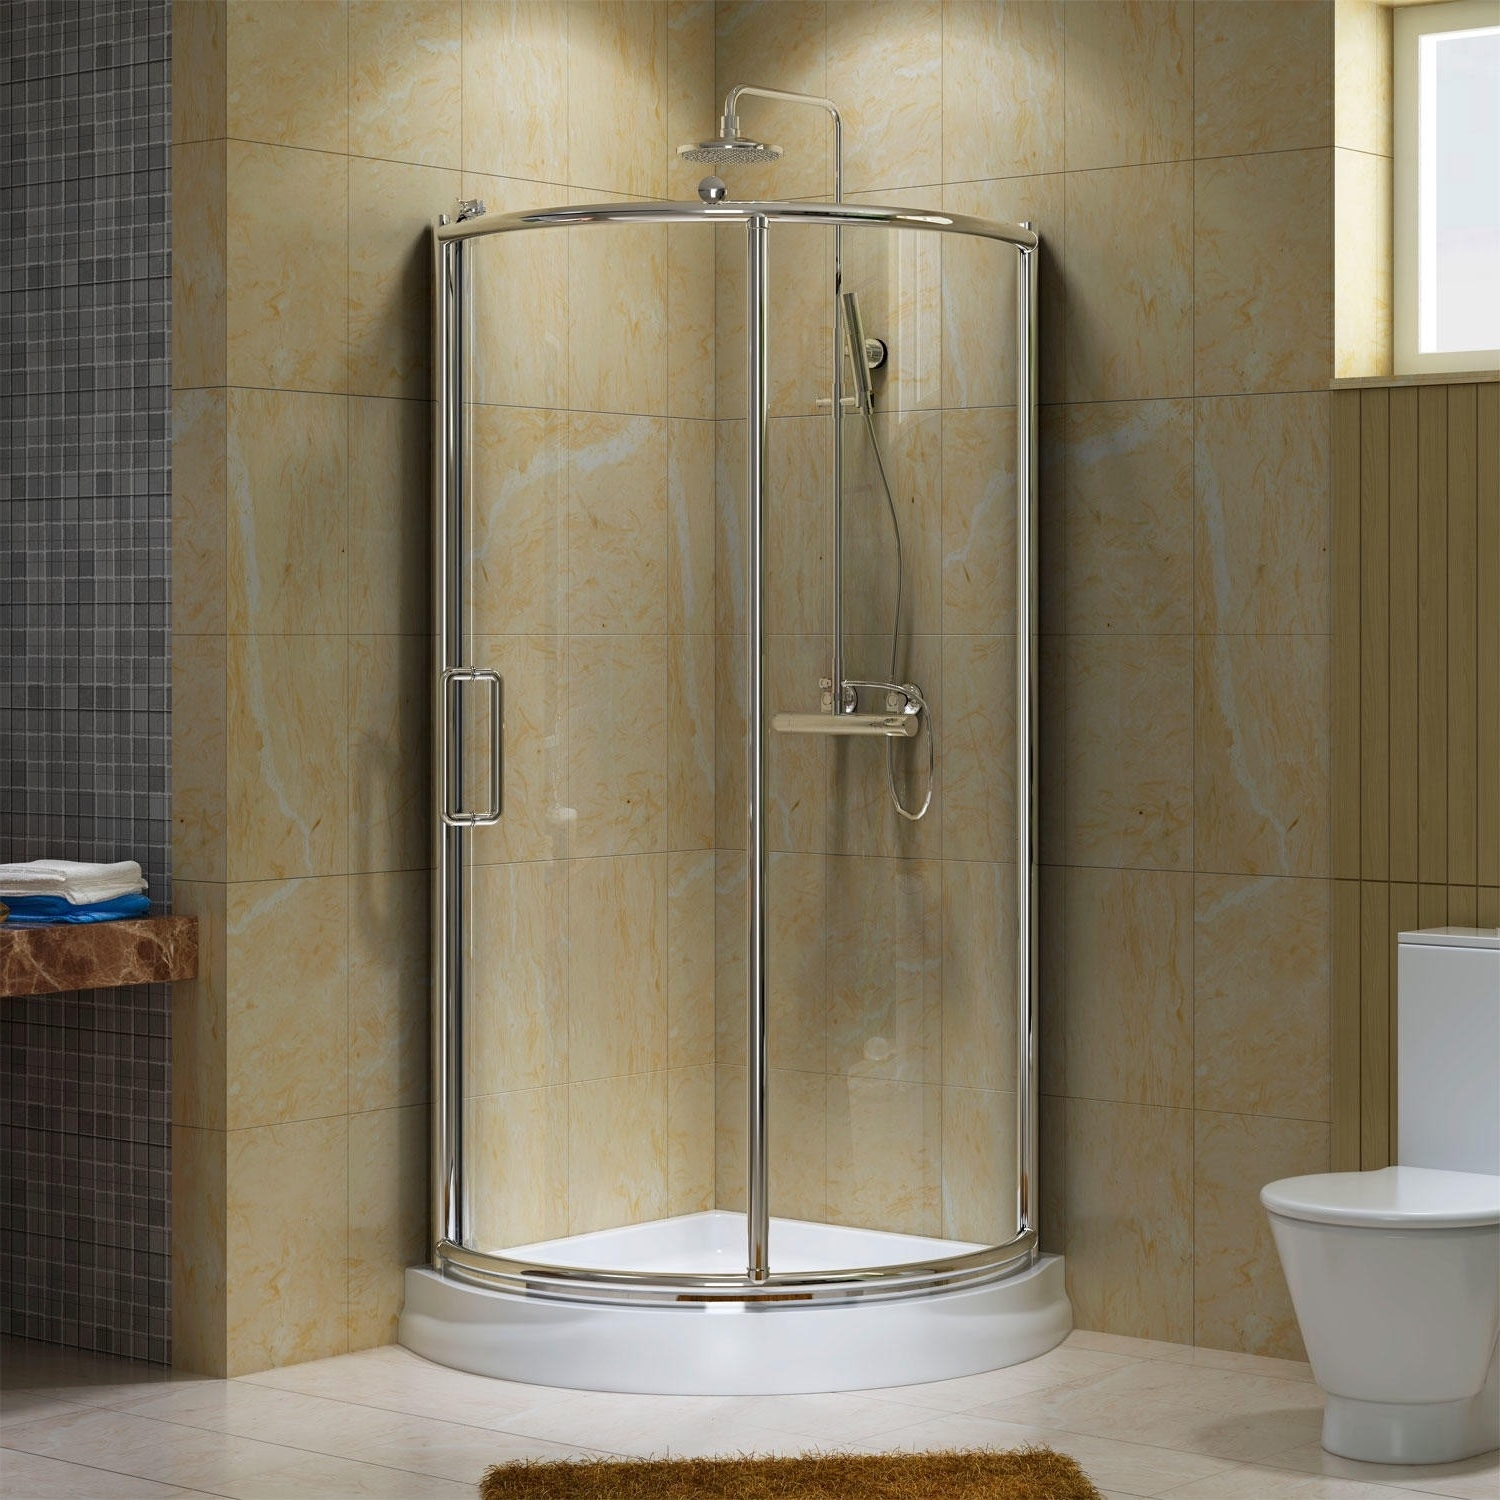 Small Bathroom Corner Shower Stall - Interior Design 3d •